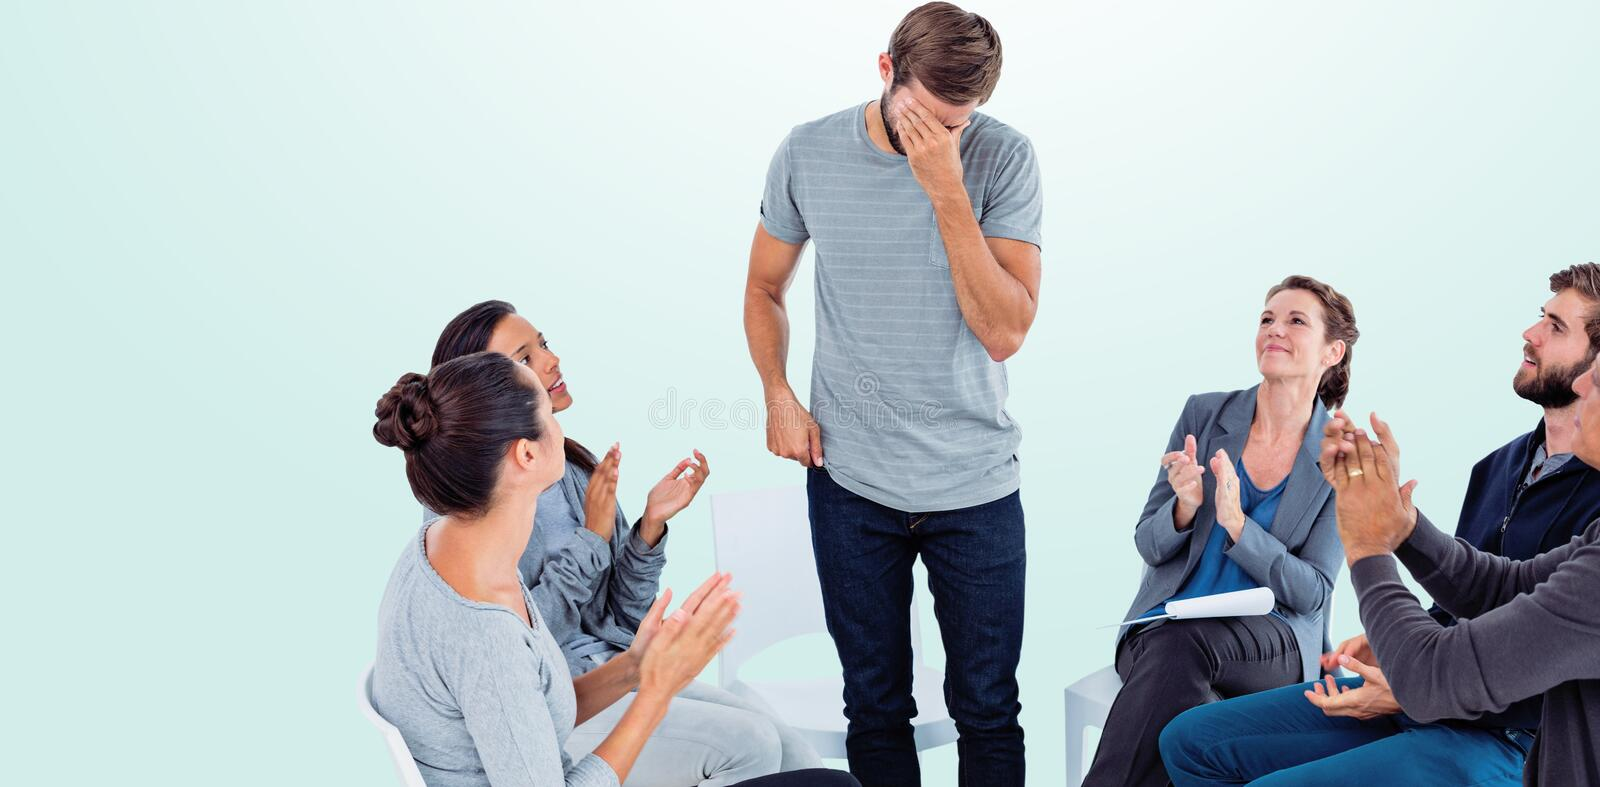 Composite image of rehab group applauding delighted man standing up. Rehab group applauding delighted men standing up against blue background stock images